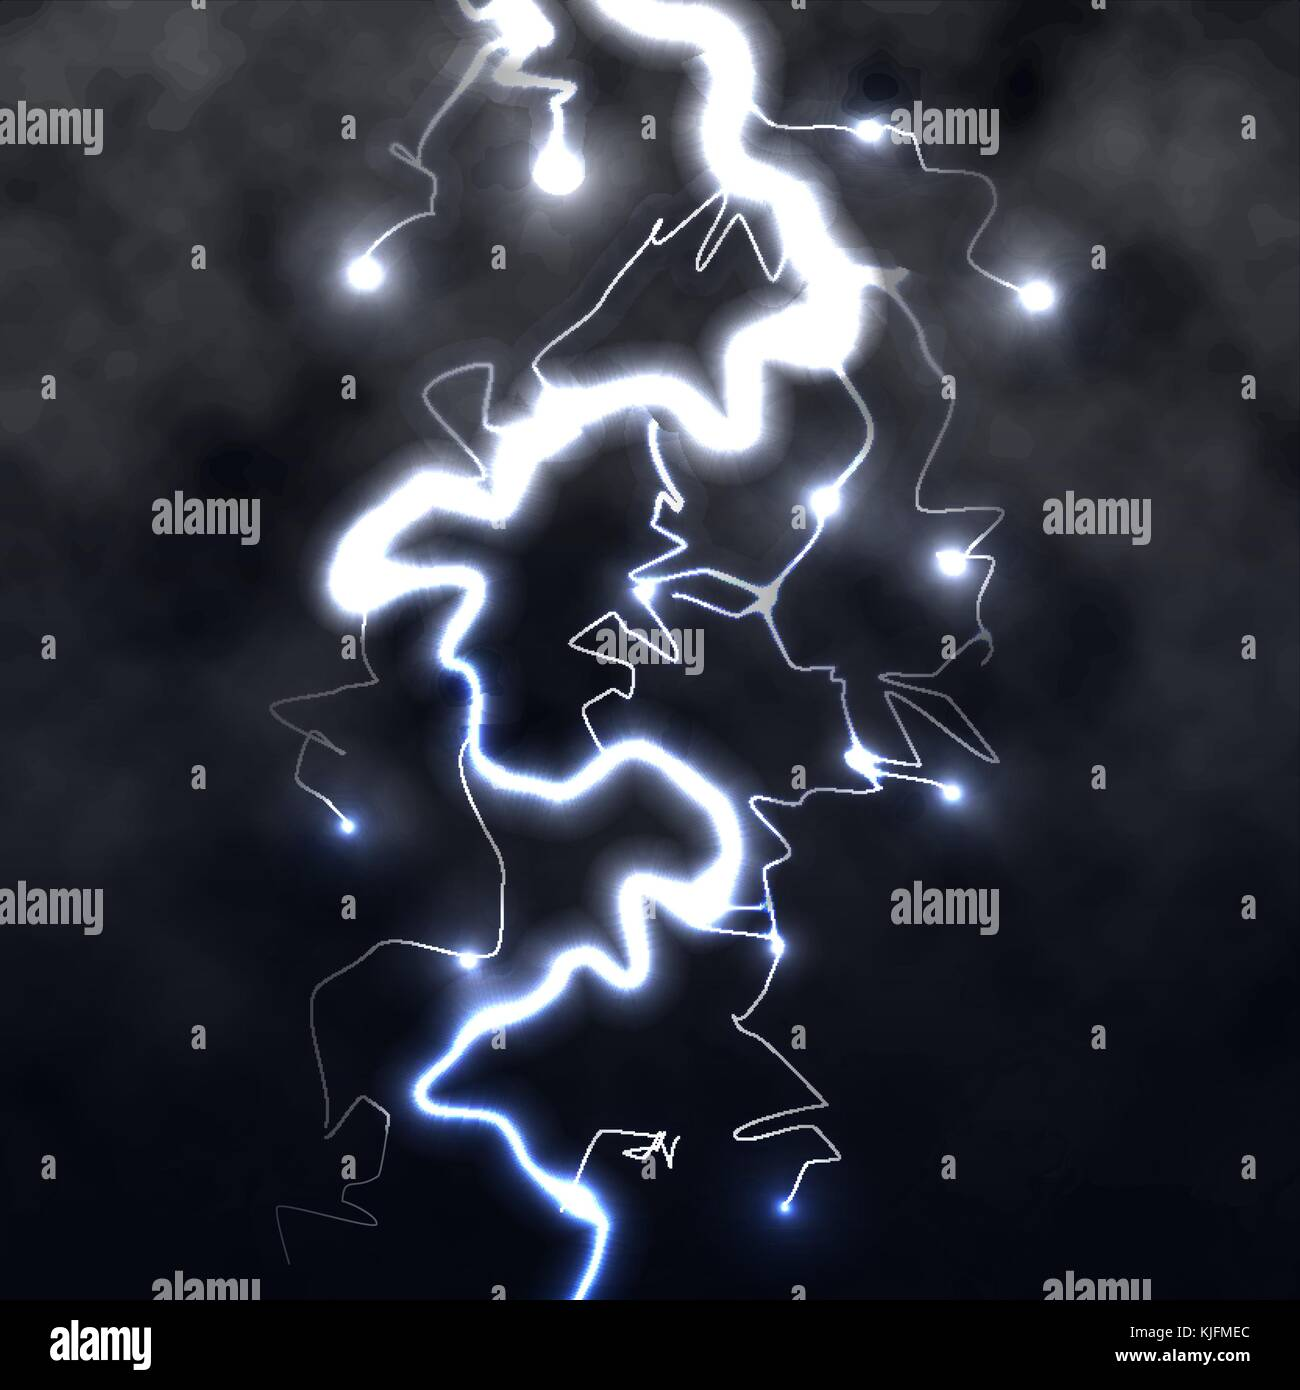 thunder vector high resolution stock photography and images alamy https www alamy com stock image lightning flash light thunder spark on black background with clouds 166302484 html